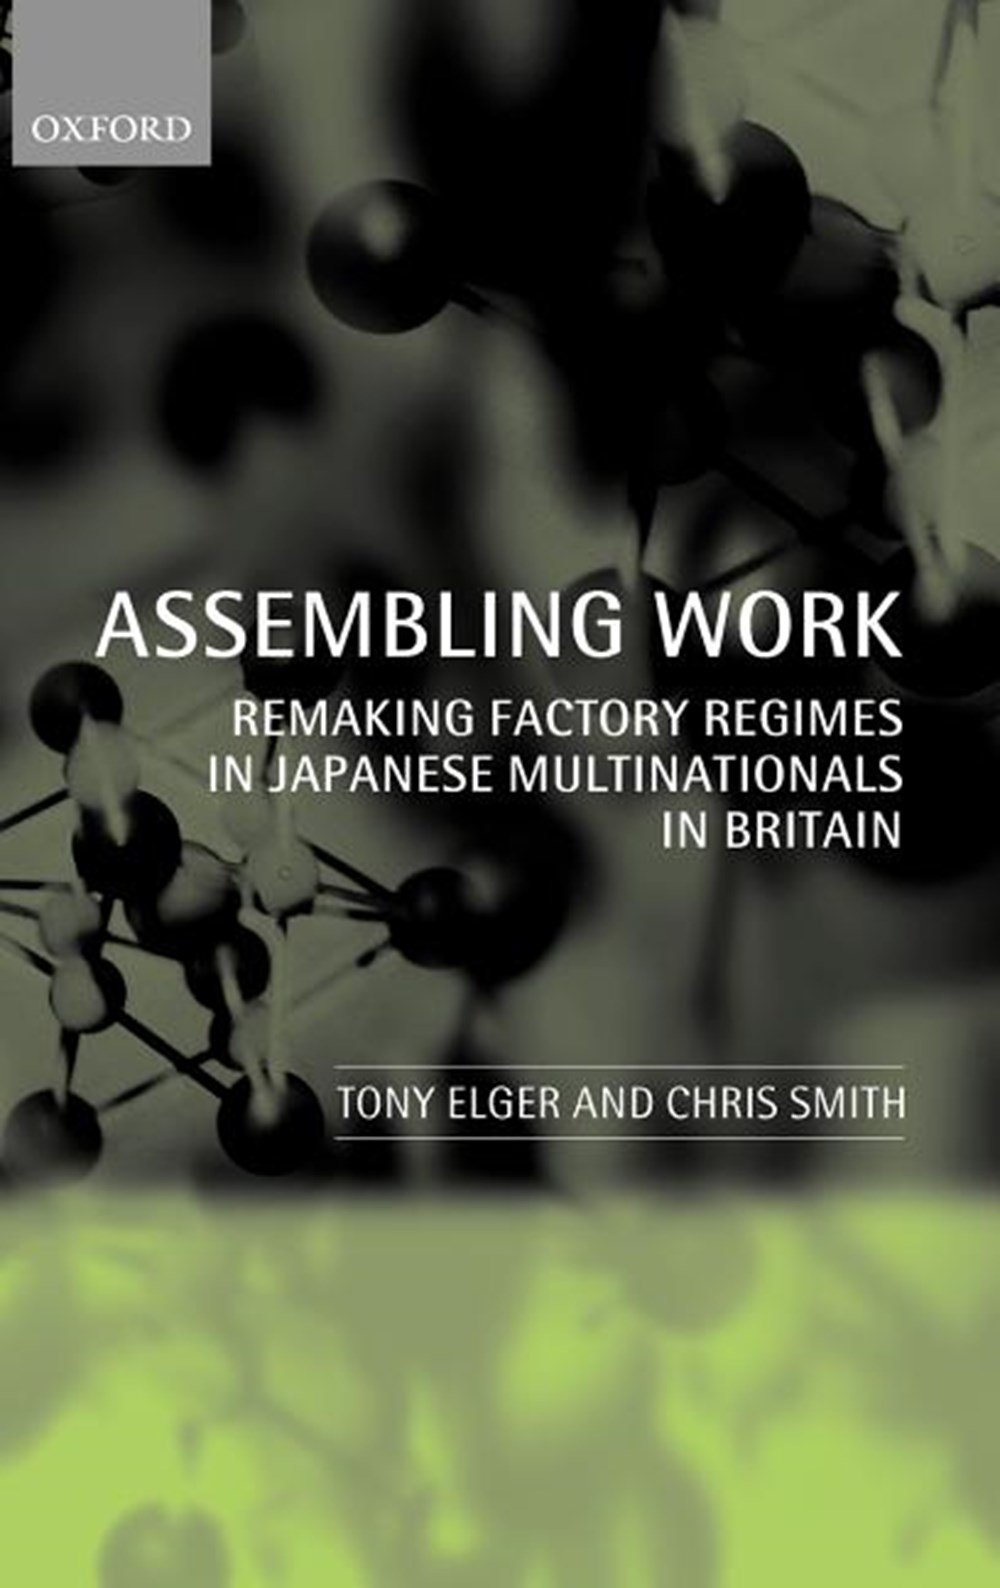 Assembling Work Remaking Factory Regimes in Japanese Multinationals in Britain